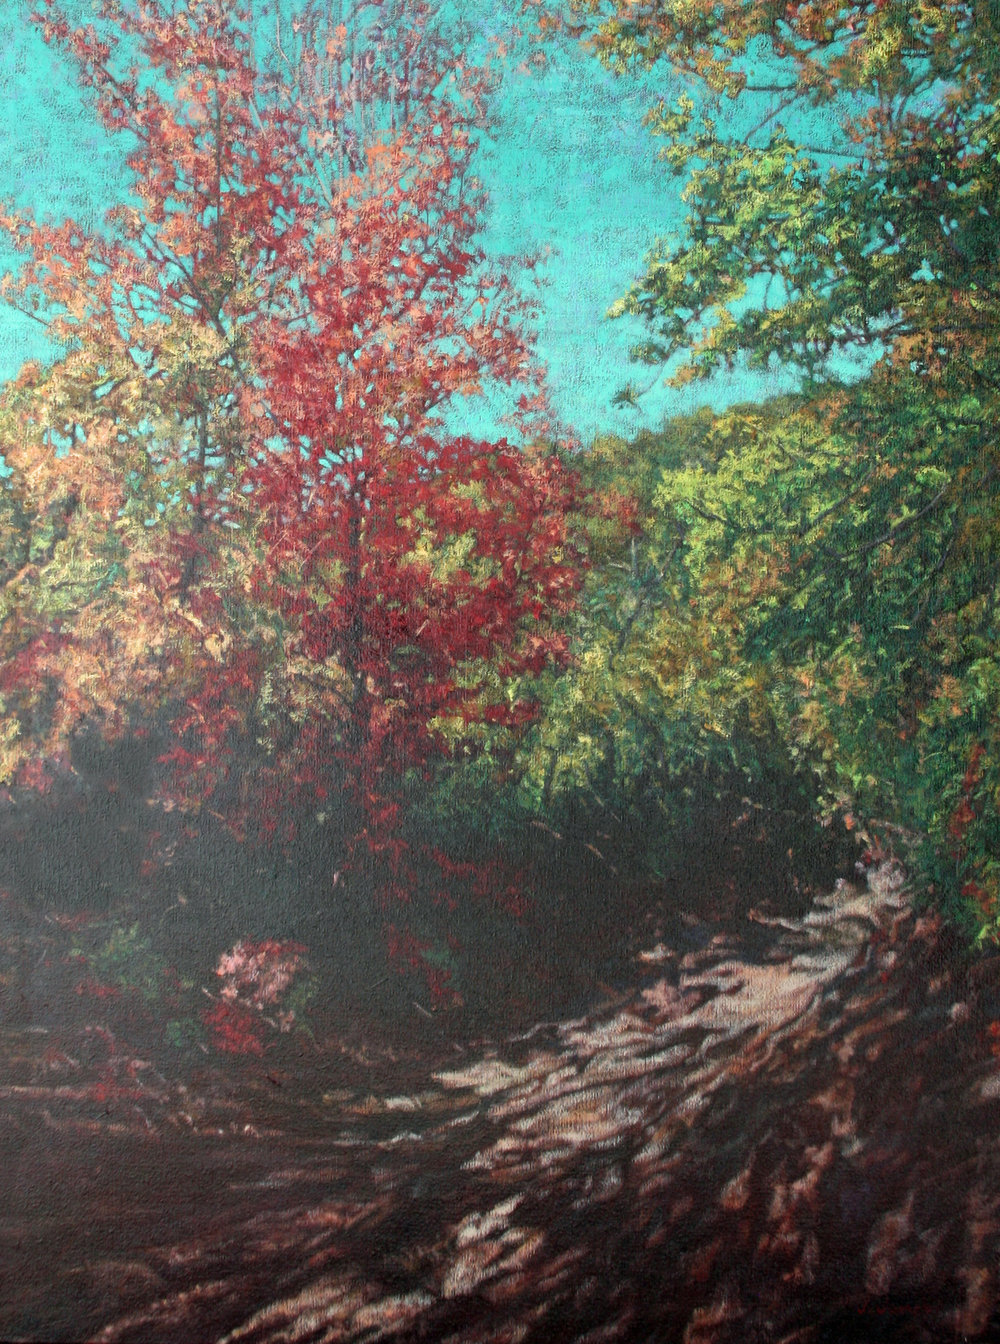 "Burch Hollow, 40"" x 30"" Oil on Canvas"